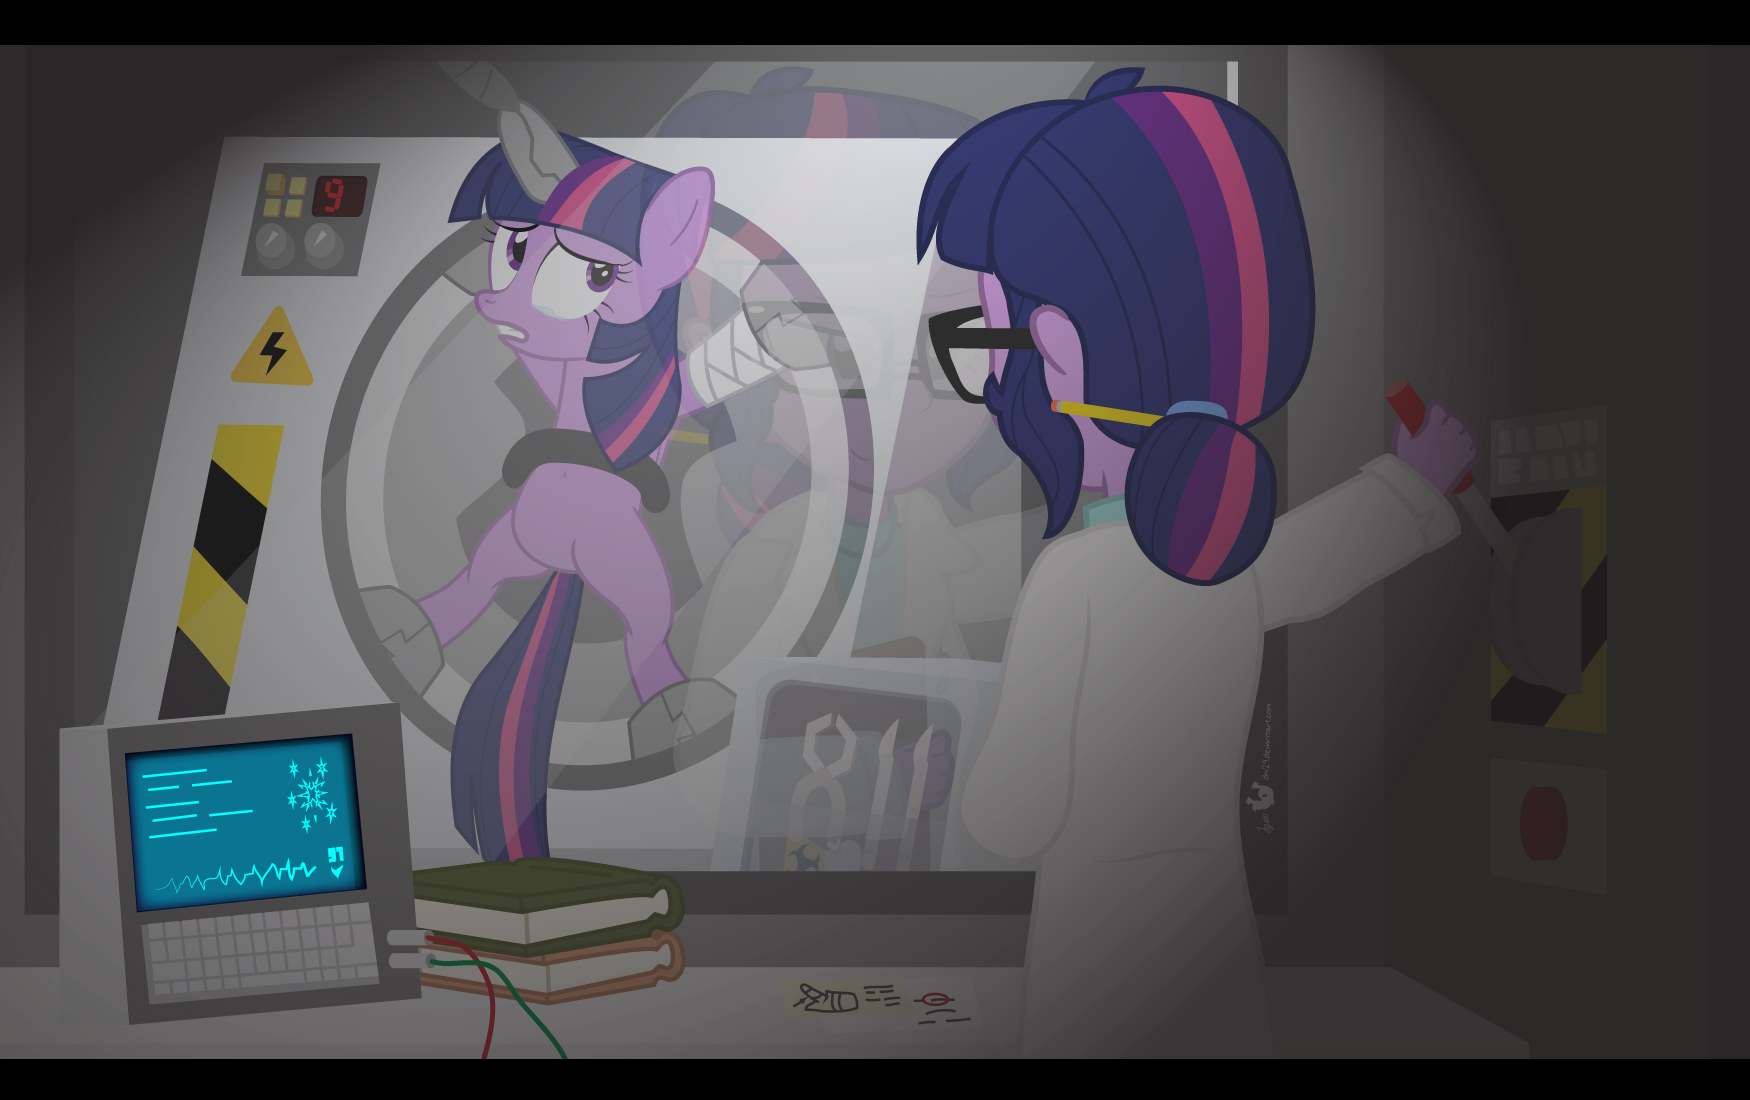 http://fc07.deviantart.net/fs70/f/2014/300/9/1/nothing_personal__just_science__by_dm29-d84b2ii.png